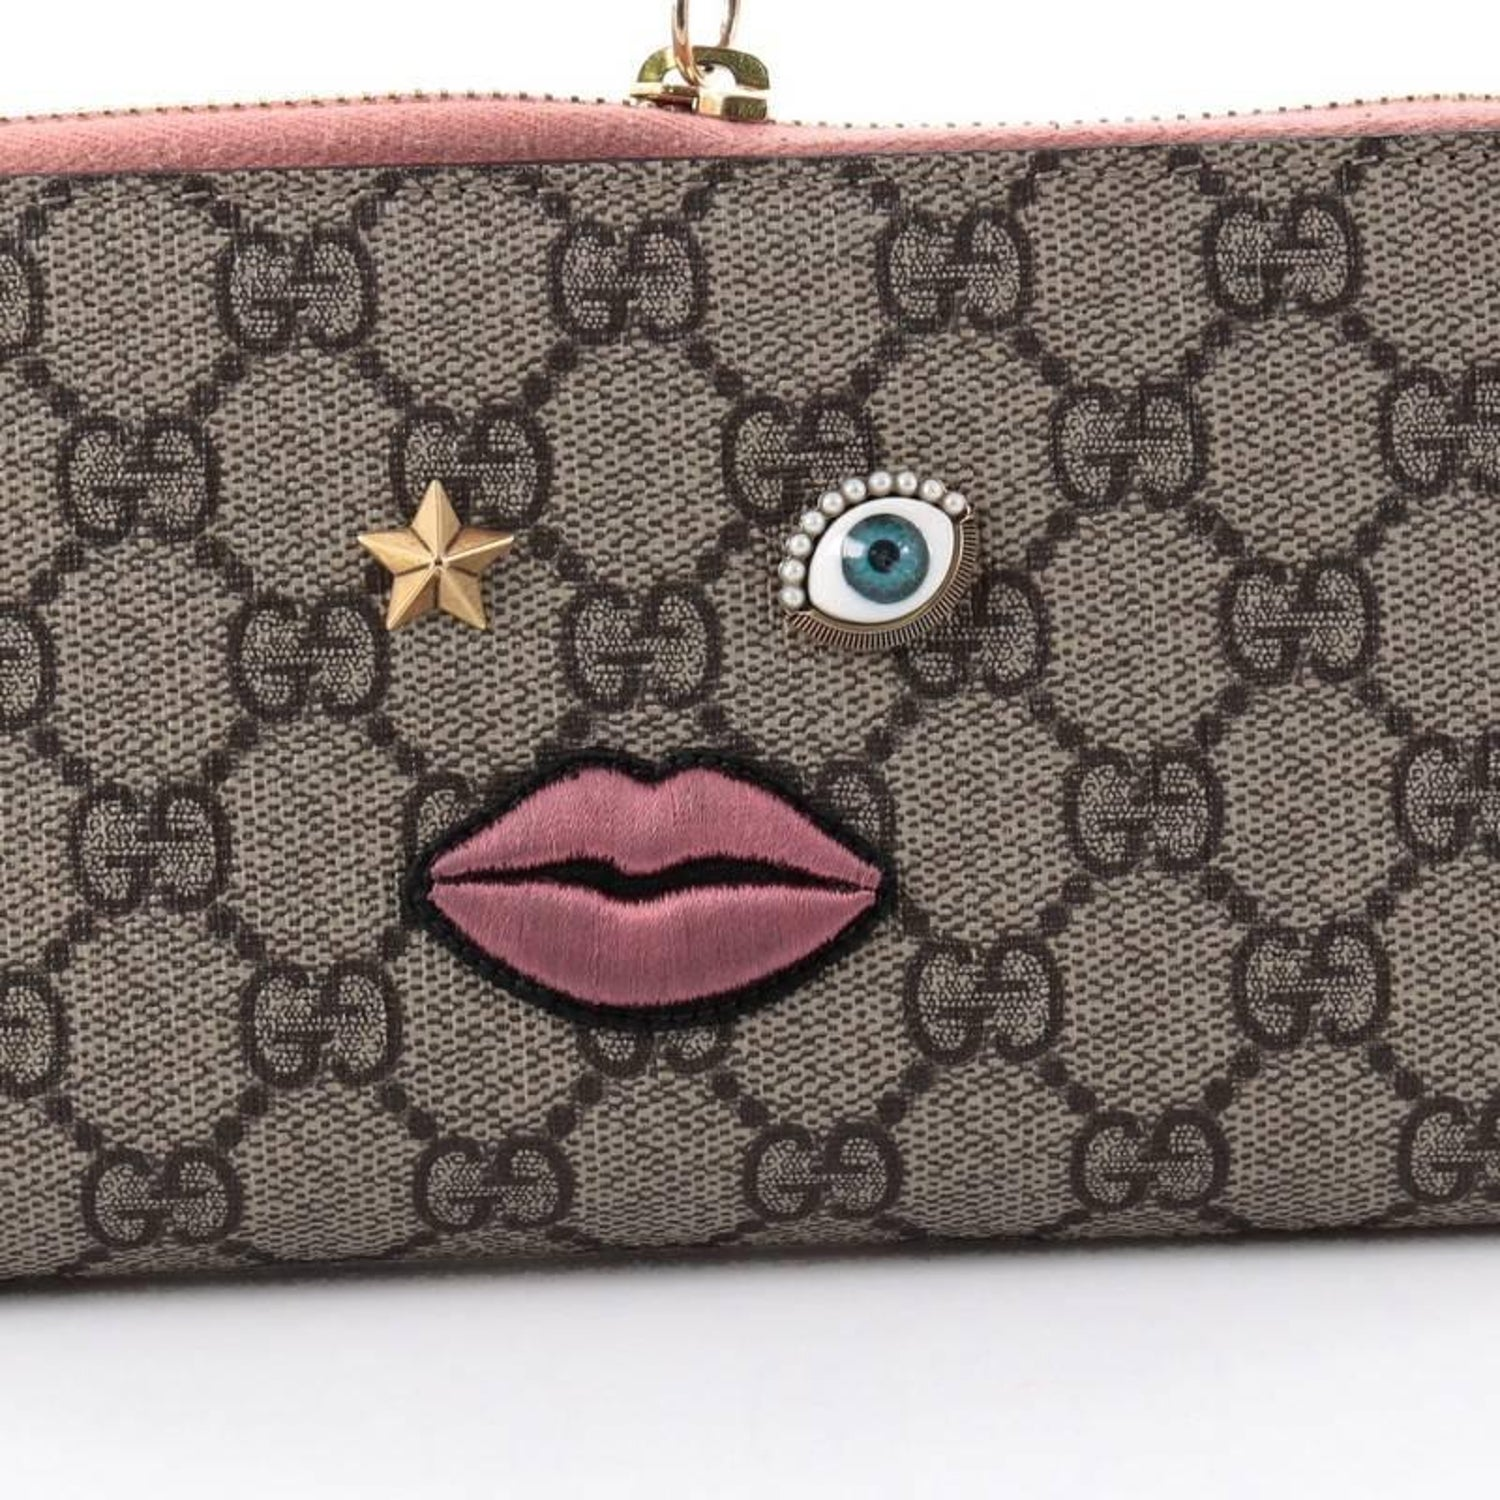 856323ba4cc0 Gucci Zip Around Wallet GG Coated Canvas with Face Applique at 1stdibs